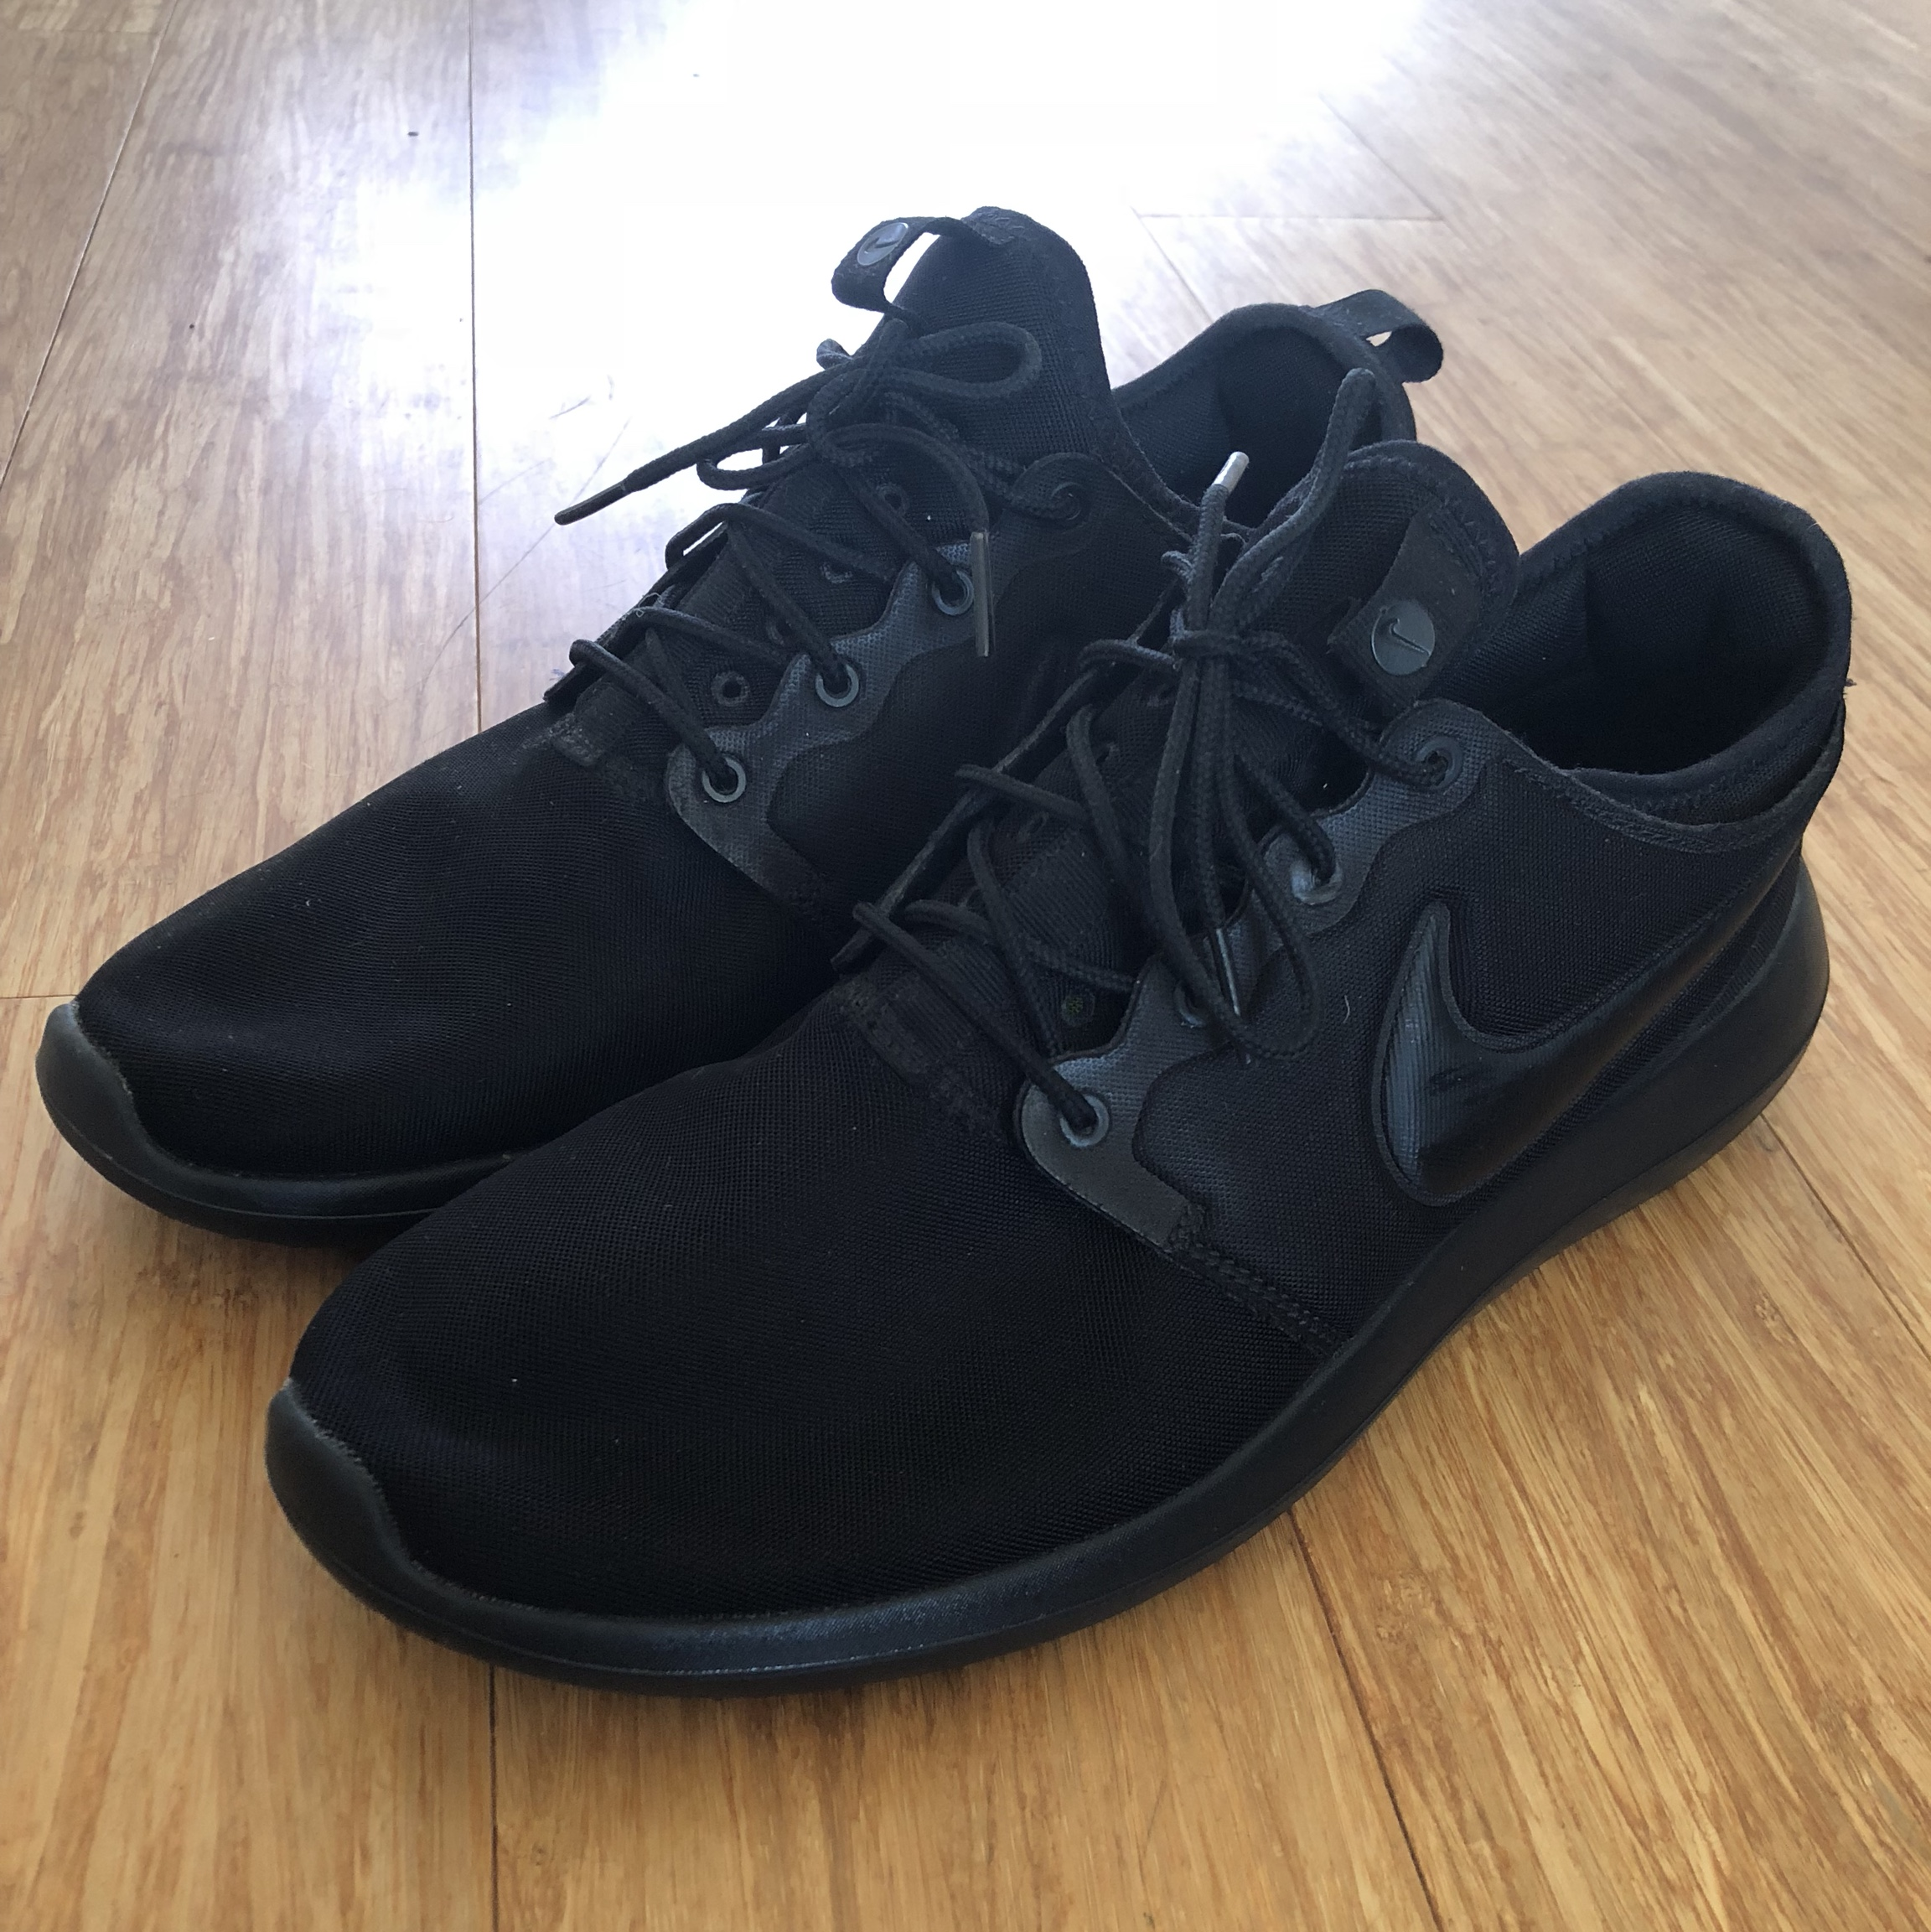 the best attitude de03f 157d7 Nike Roshe 2 trainers all Black size UK 10. Pristine... - Depop